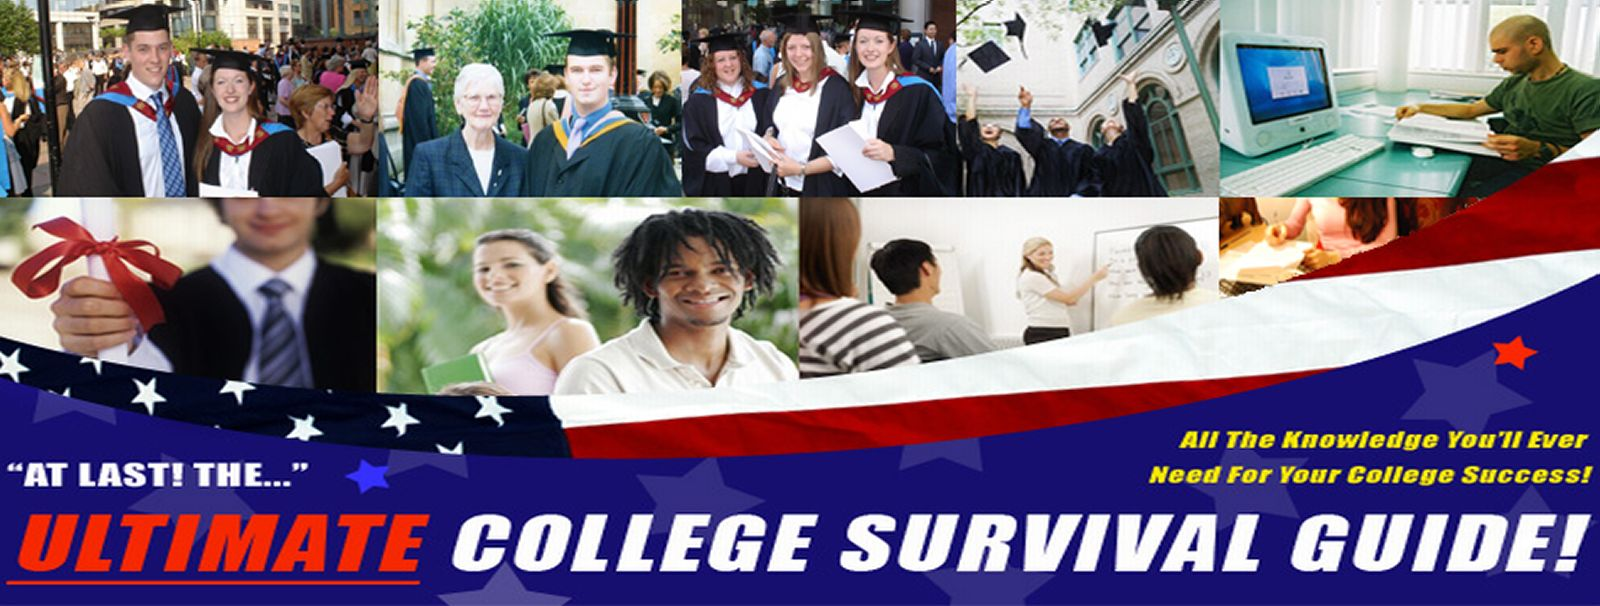 Ultimate College Survival Guide